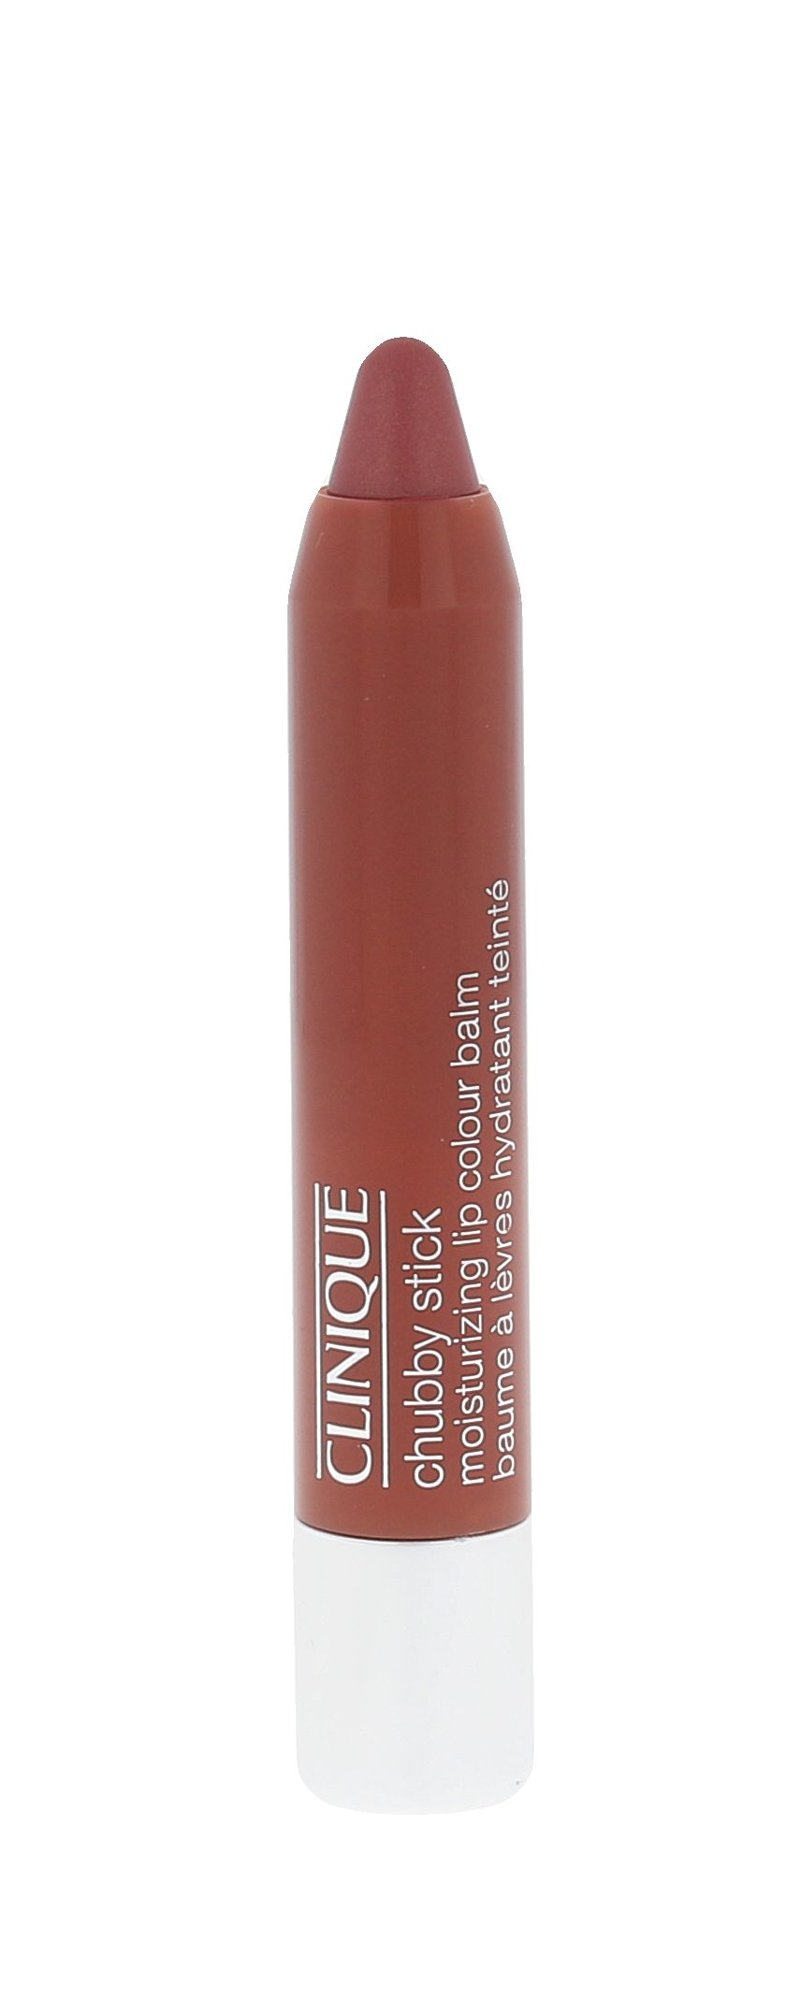 Clinique Chubby Stick Cosmetic 3ml 10 Bountiful Blush